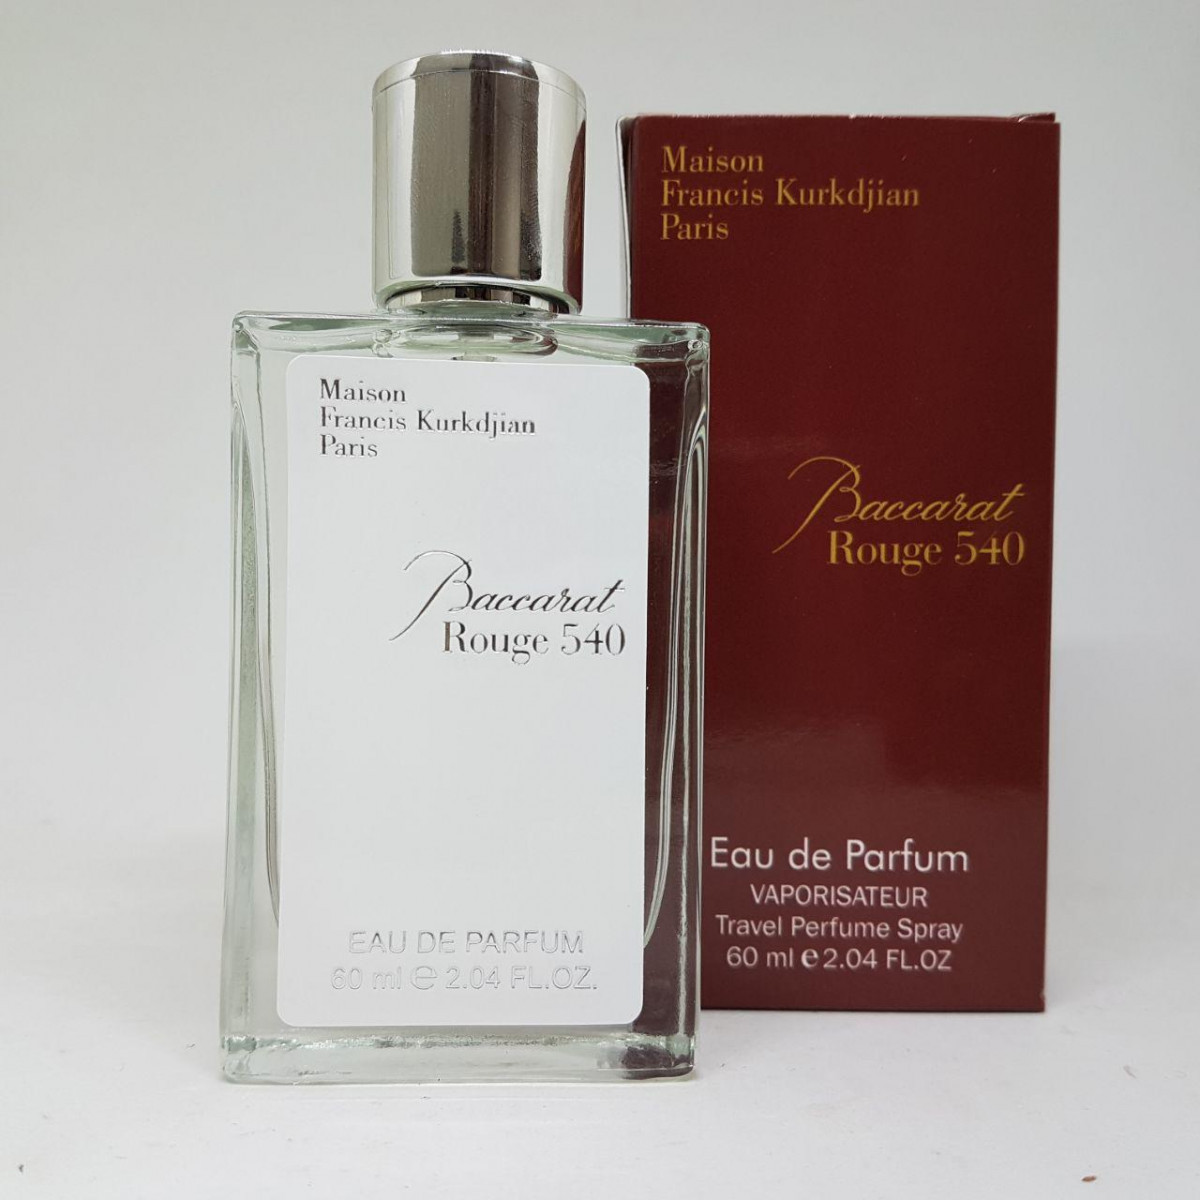 Maison Francis Kurkdjian Baccarat Rouge 540 - Travel Spray 60ml